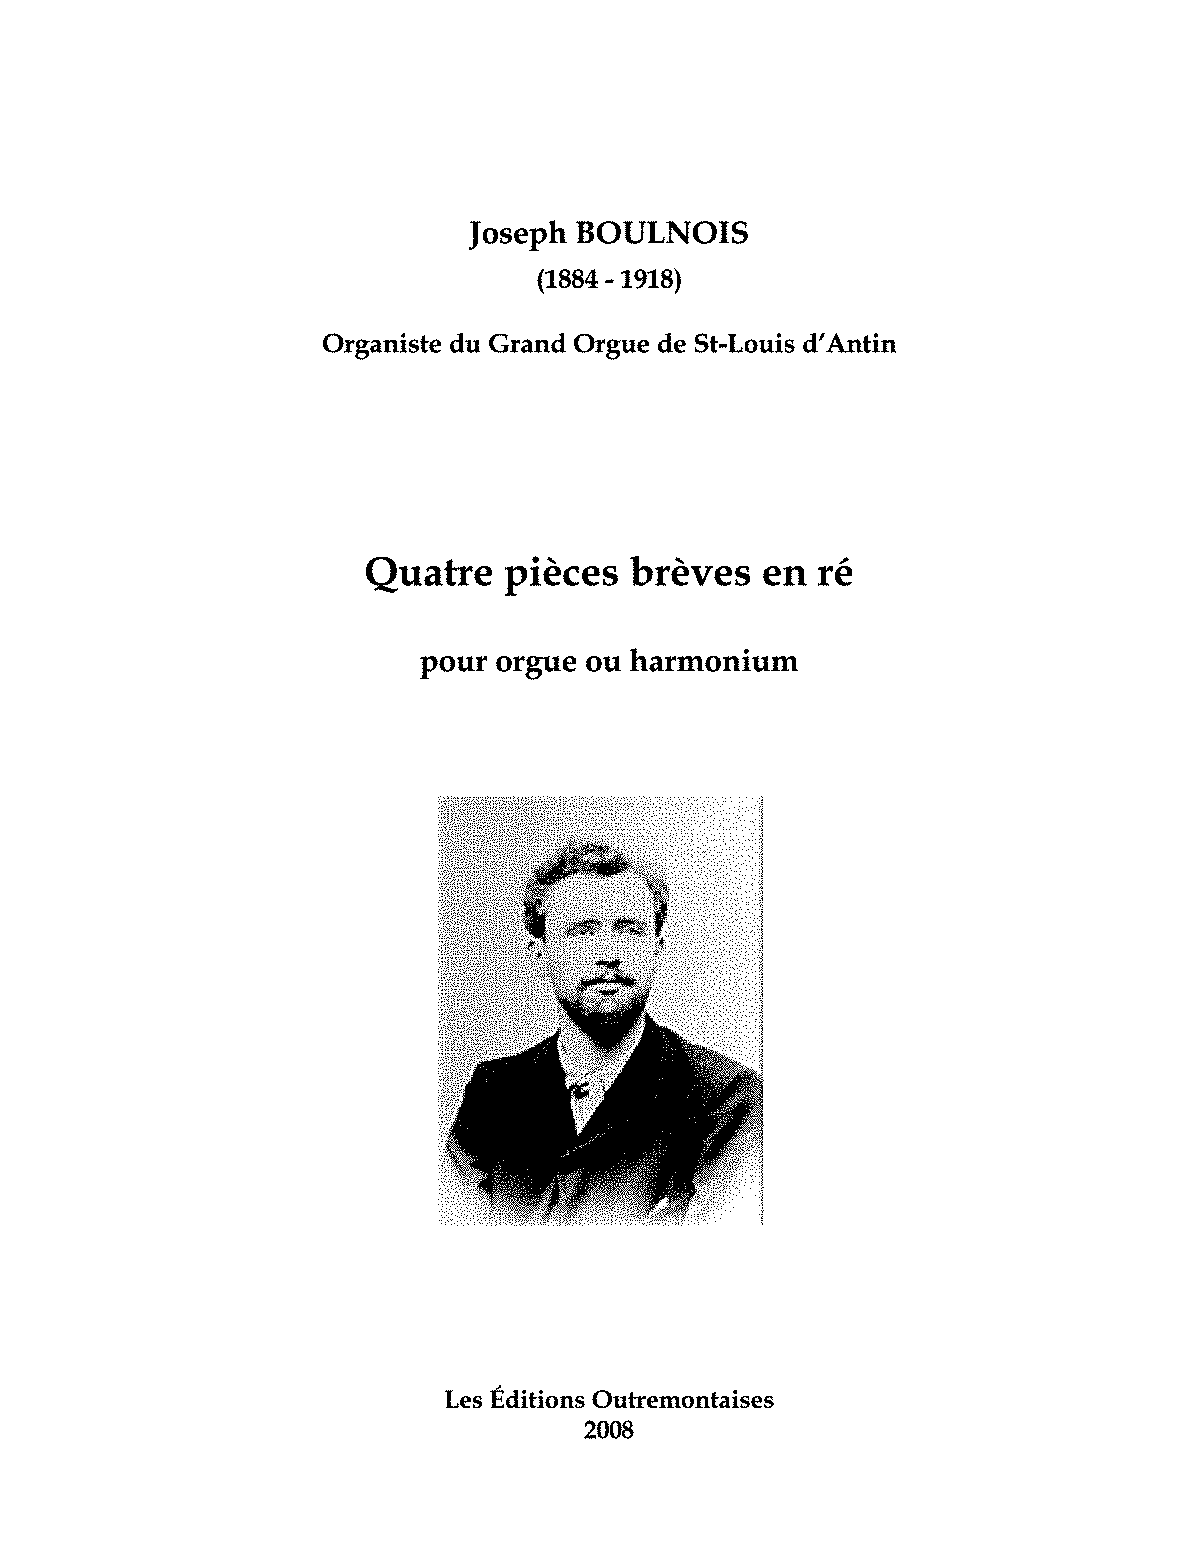 WIMA.0336-Boulnois 4 Pieces 1.pdf